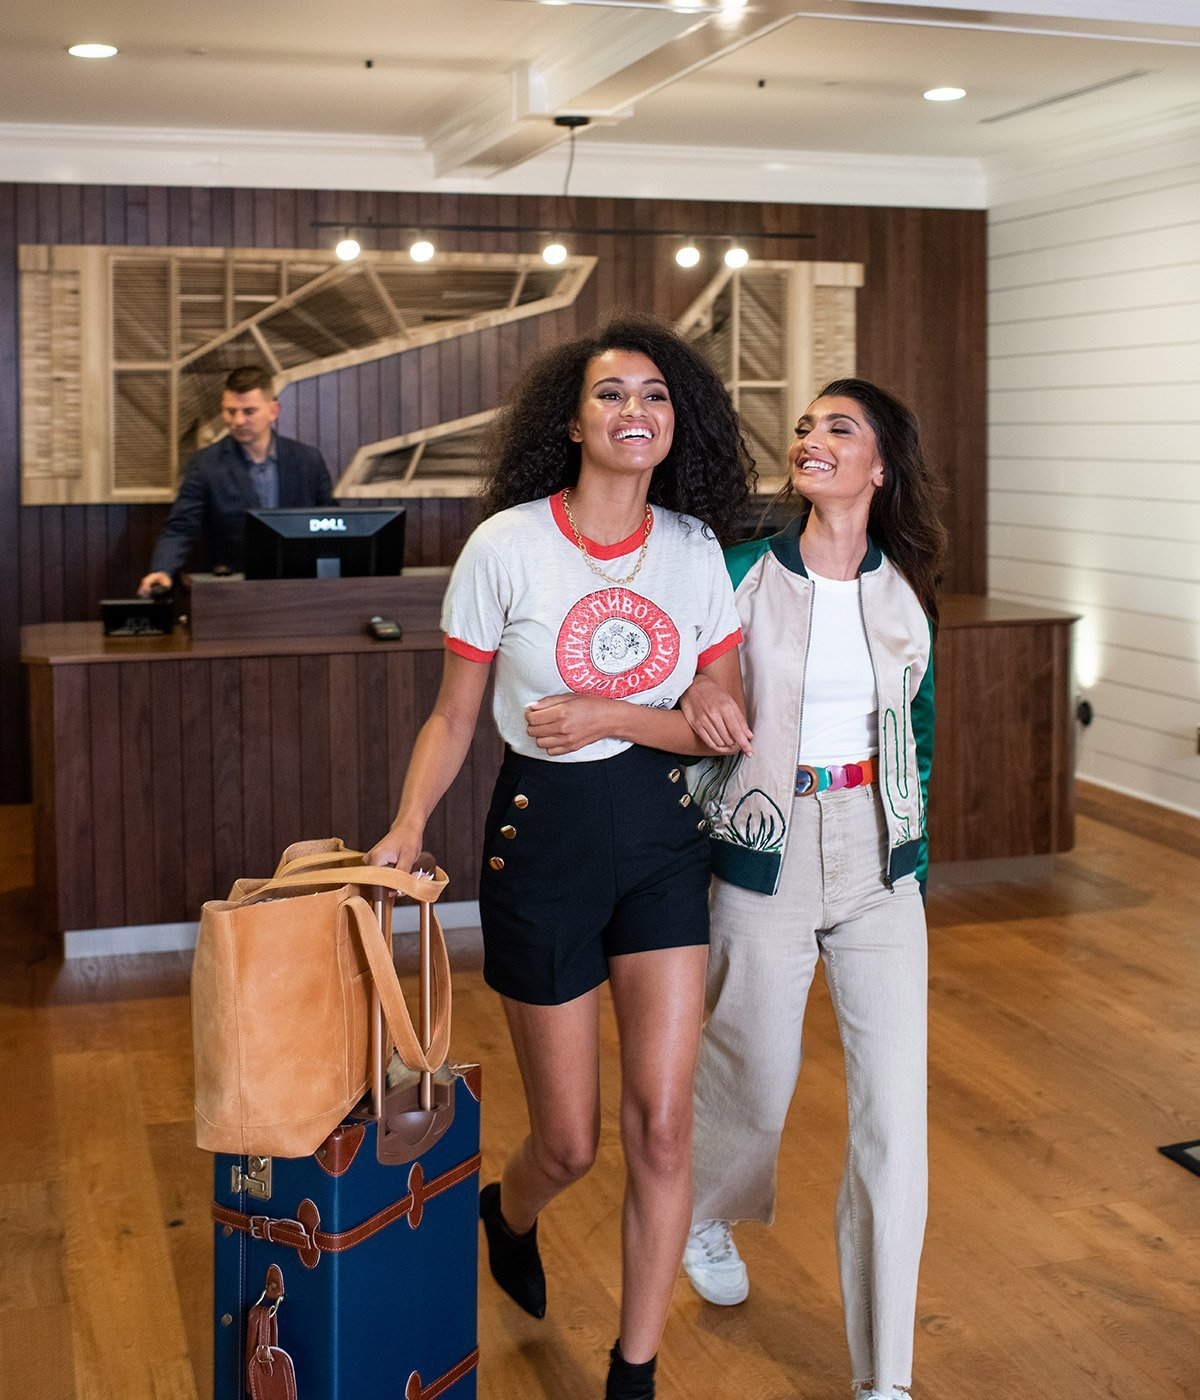 Two women checking in at reception